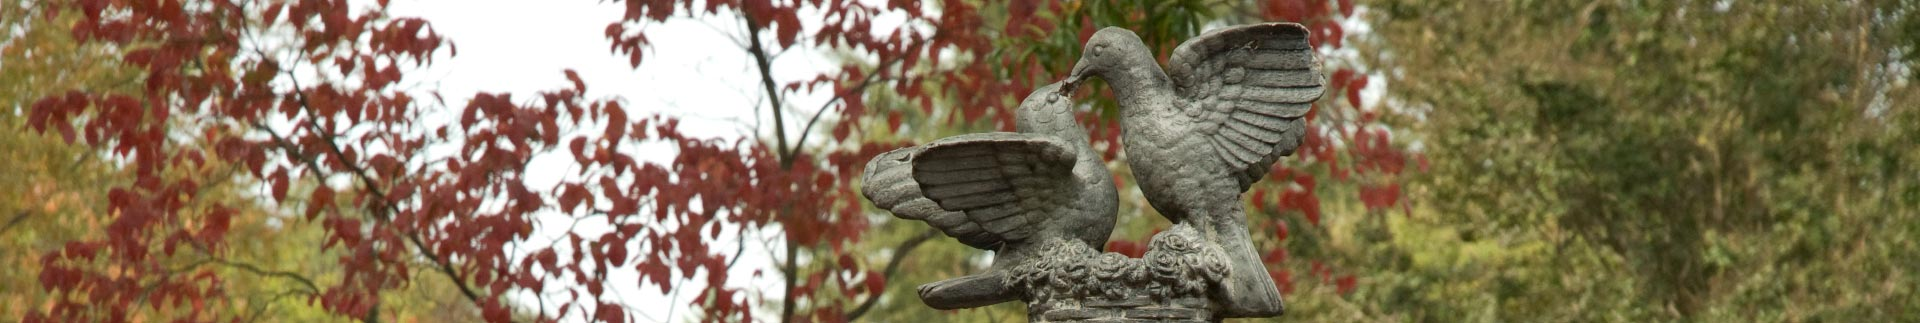 RCCD-Doves-Fall-Trees-in-Background